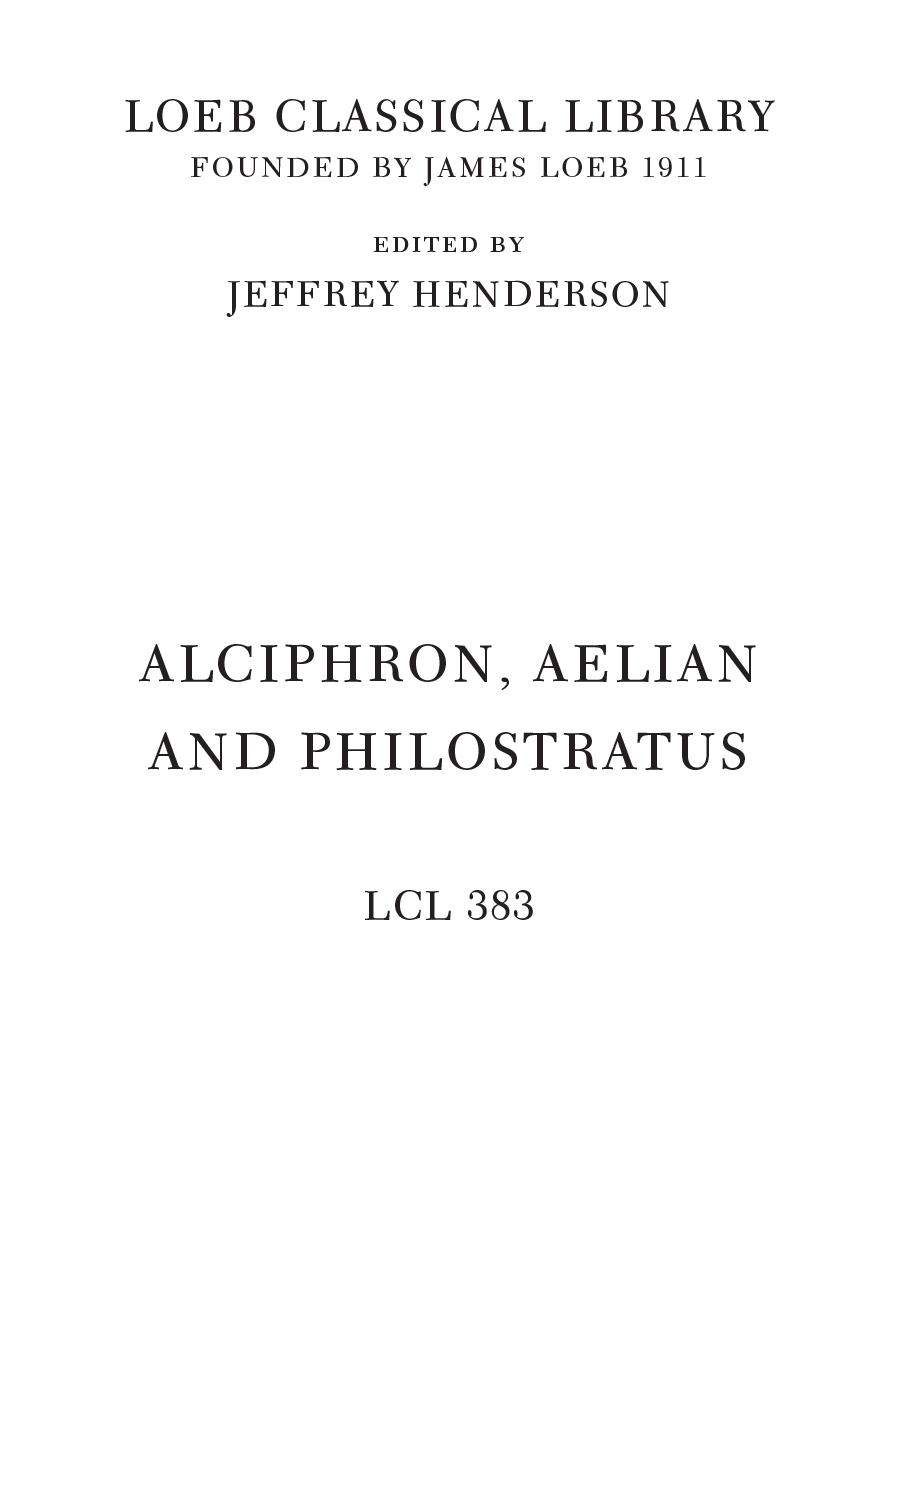 LOEB CLASSICAL LIBRARY FOUNDED BY JAMES LOEB 1911 EDITED BY JEFFREY HENDERSON ALCIPHRON, AELIAN AND PHILOSTRATUS LCL 383